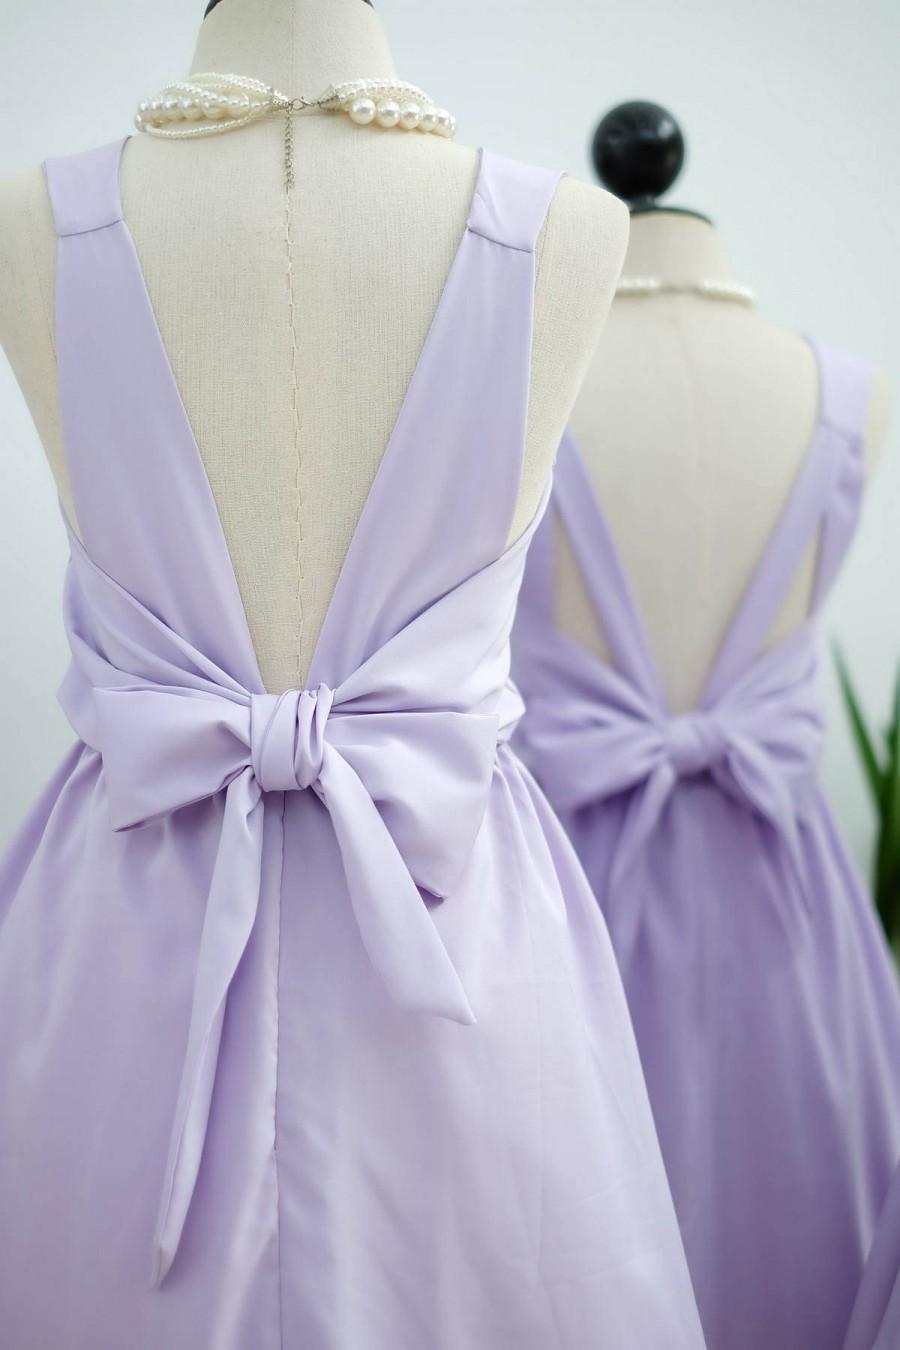 Wedding - Lilac dress lilac Bridesmaid dress Wedding Prom dress Cocktail Party dress Evening dress Backless bow dress